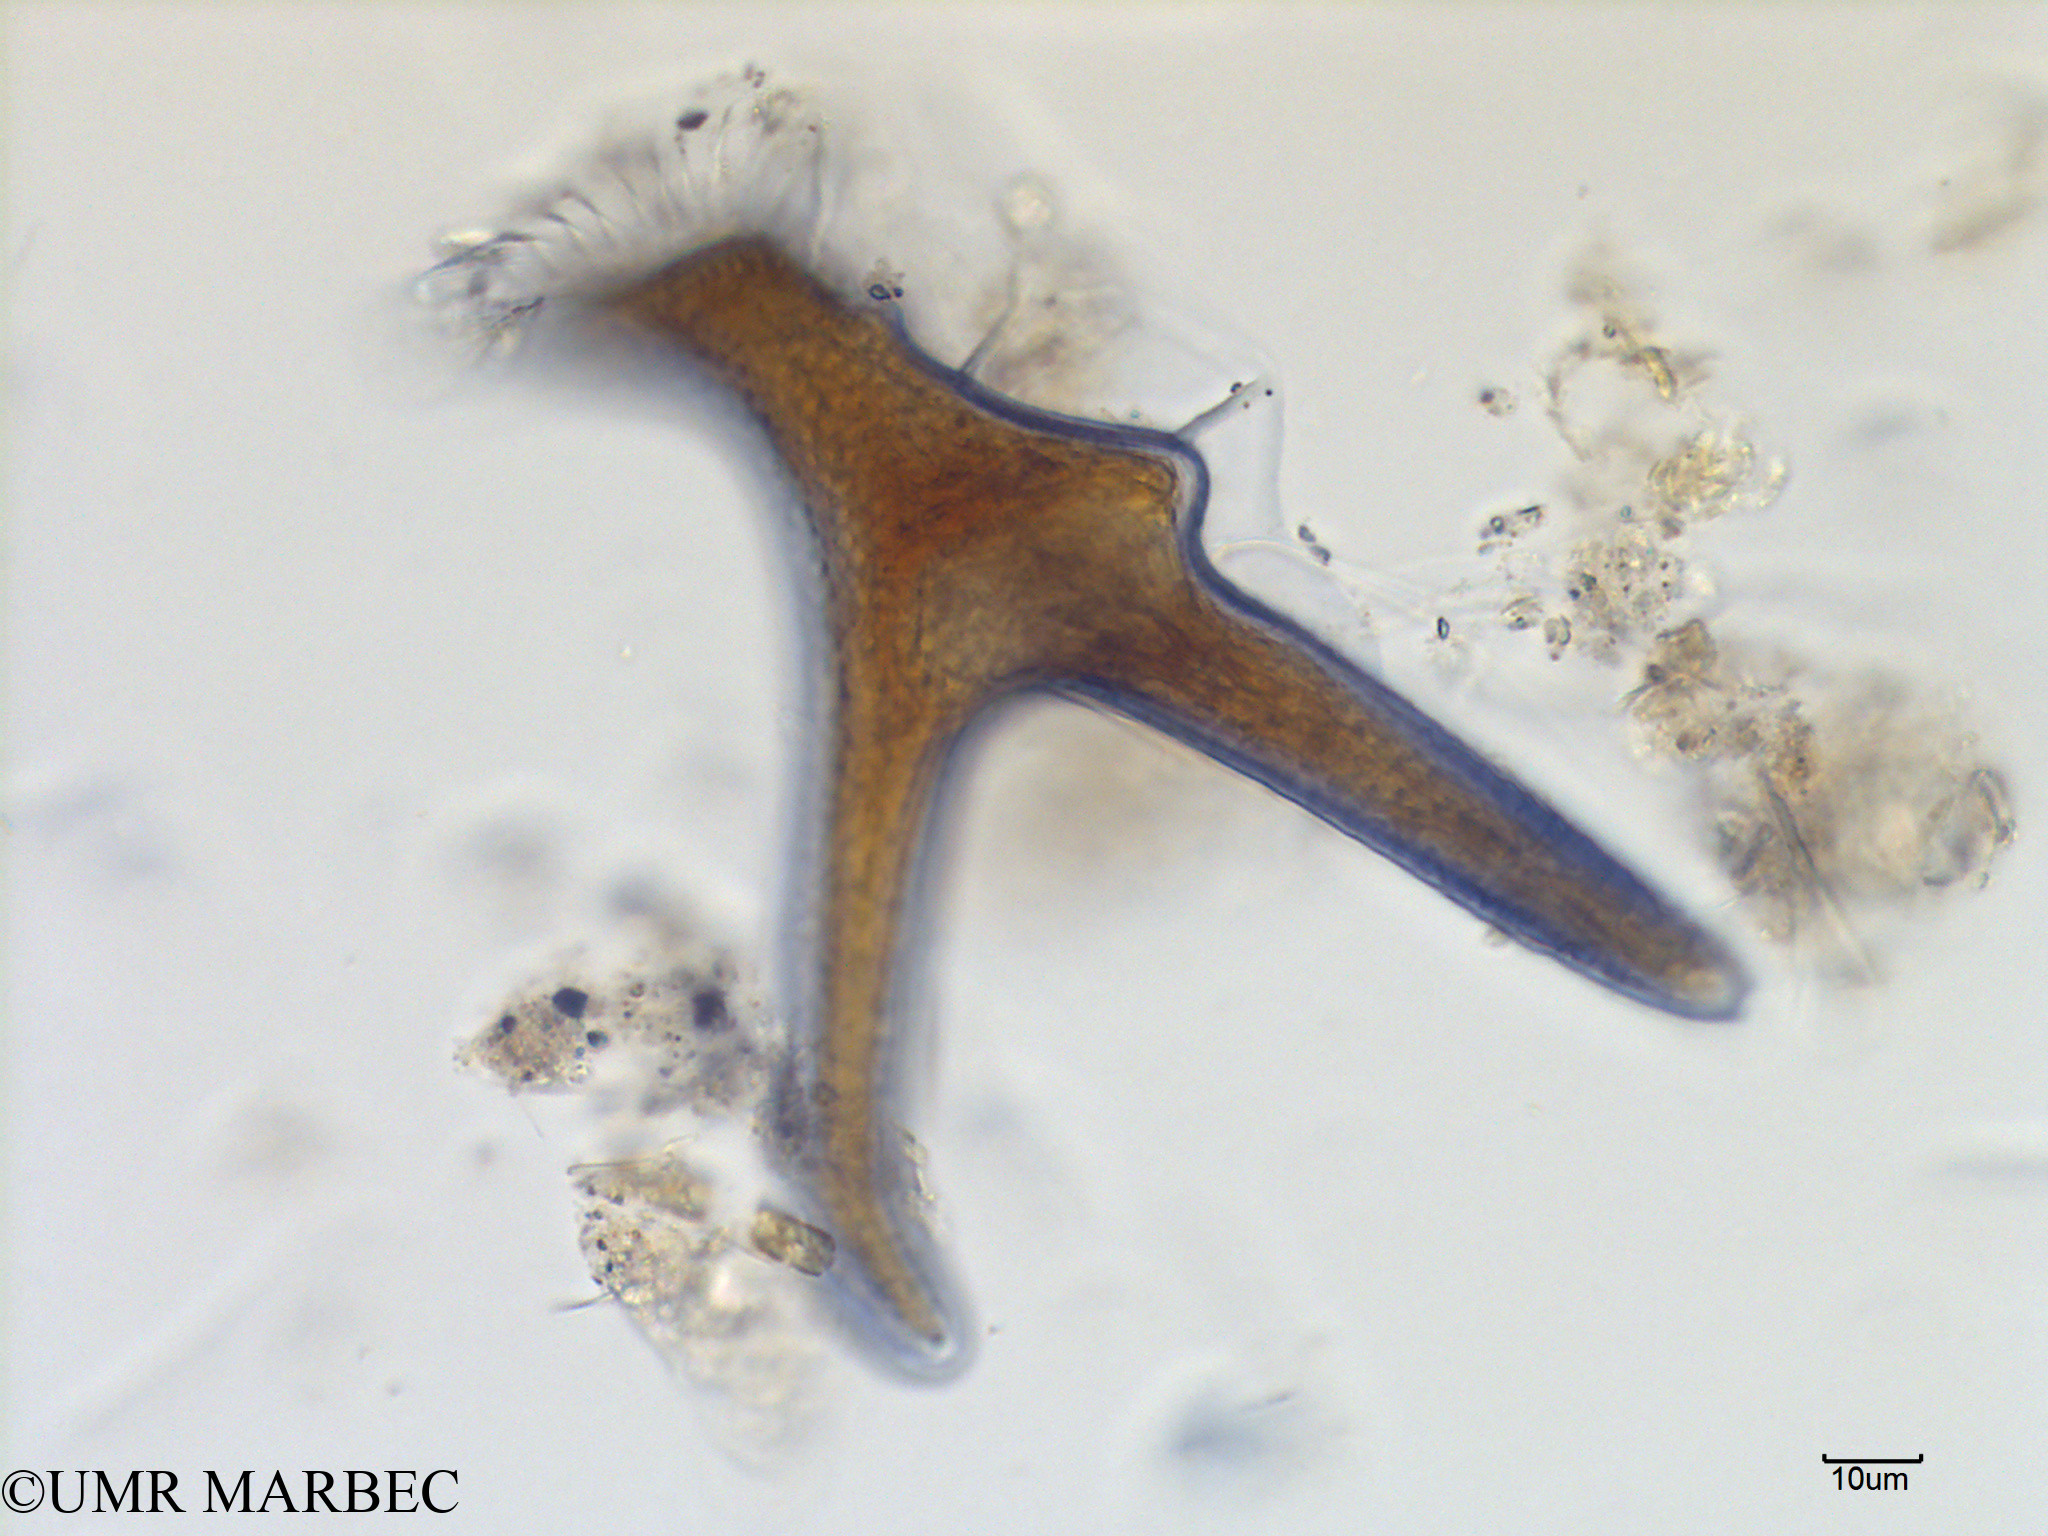 phyto/Scattered_Islands/mayotte_lagoon/SIREME May 2016/Dinophysis miles (MAY8_dino a identifier-20).tif(copy).jpg